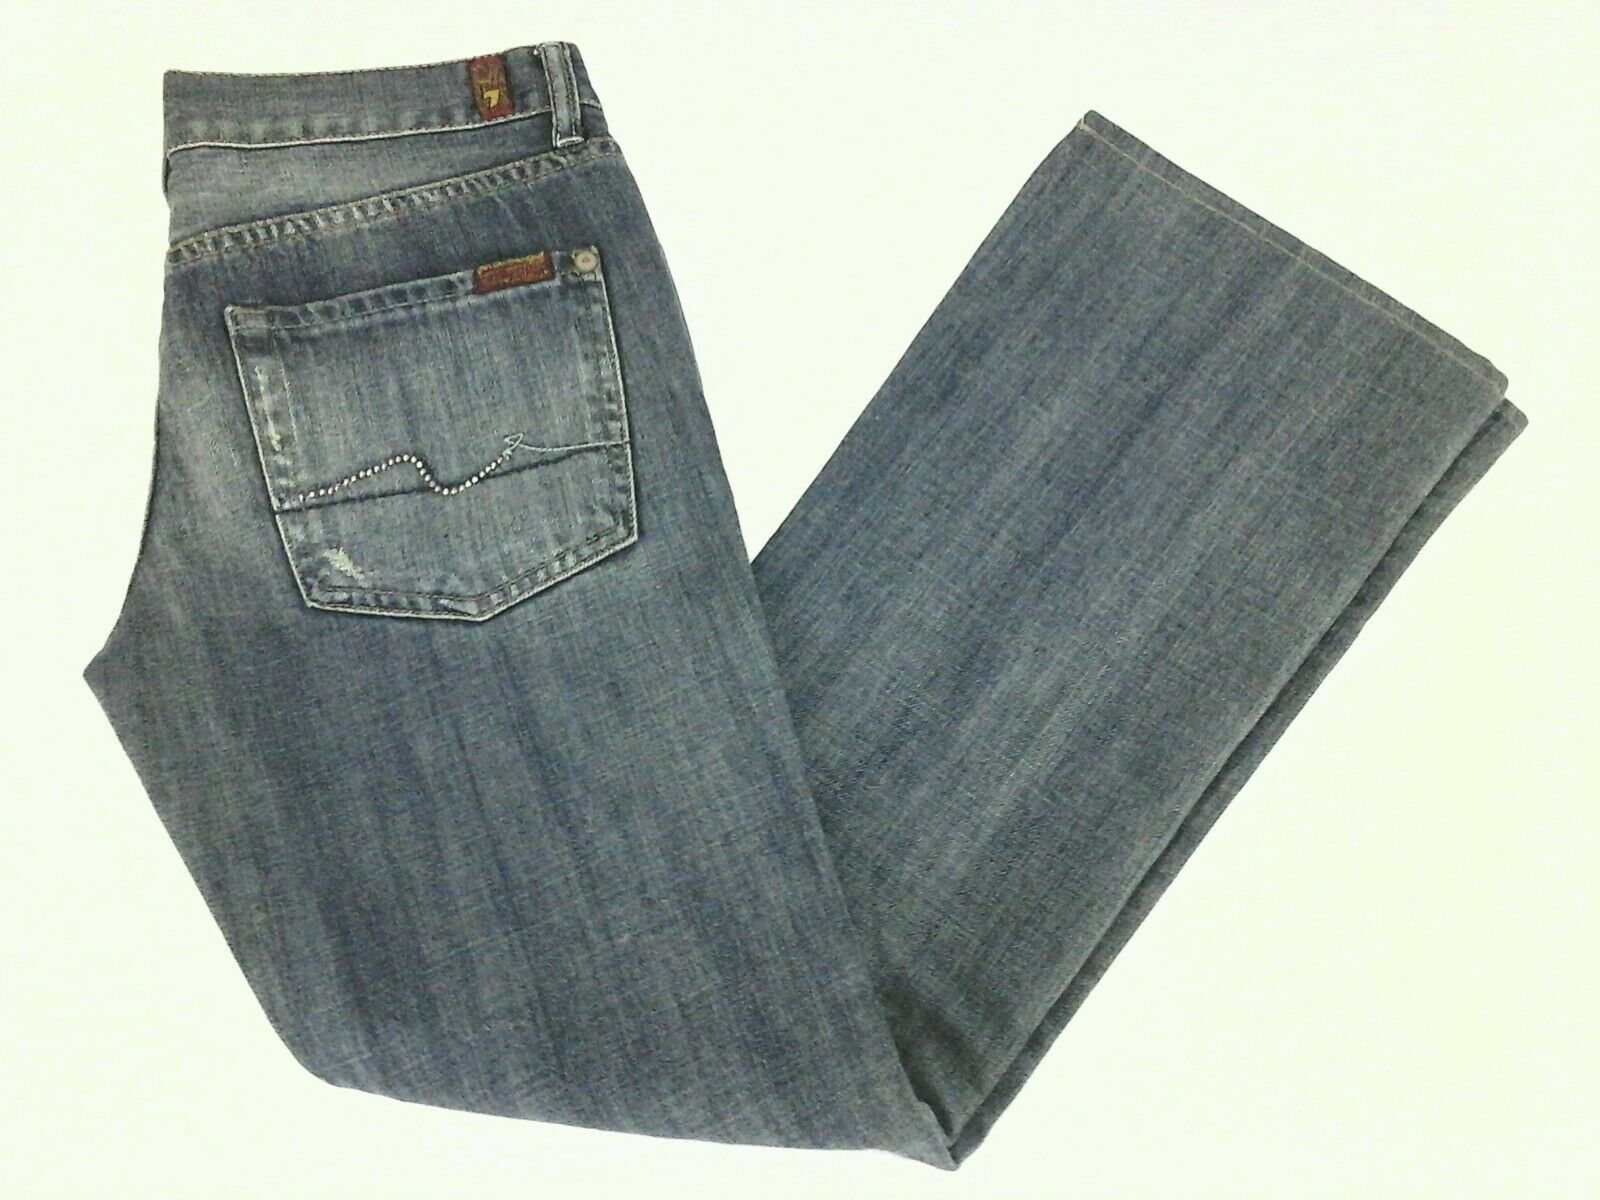 SEVEN 7 FOR ALL MANKIND Jeans FLARE Distressed bluee Denim STUDS Womens 28